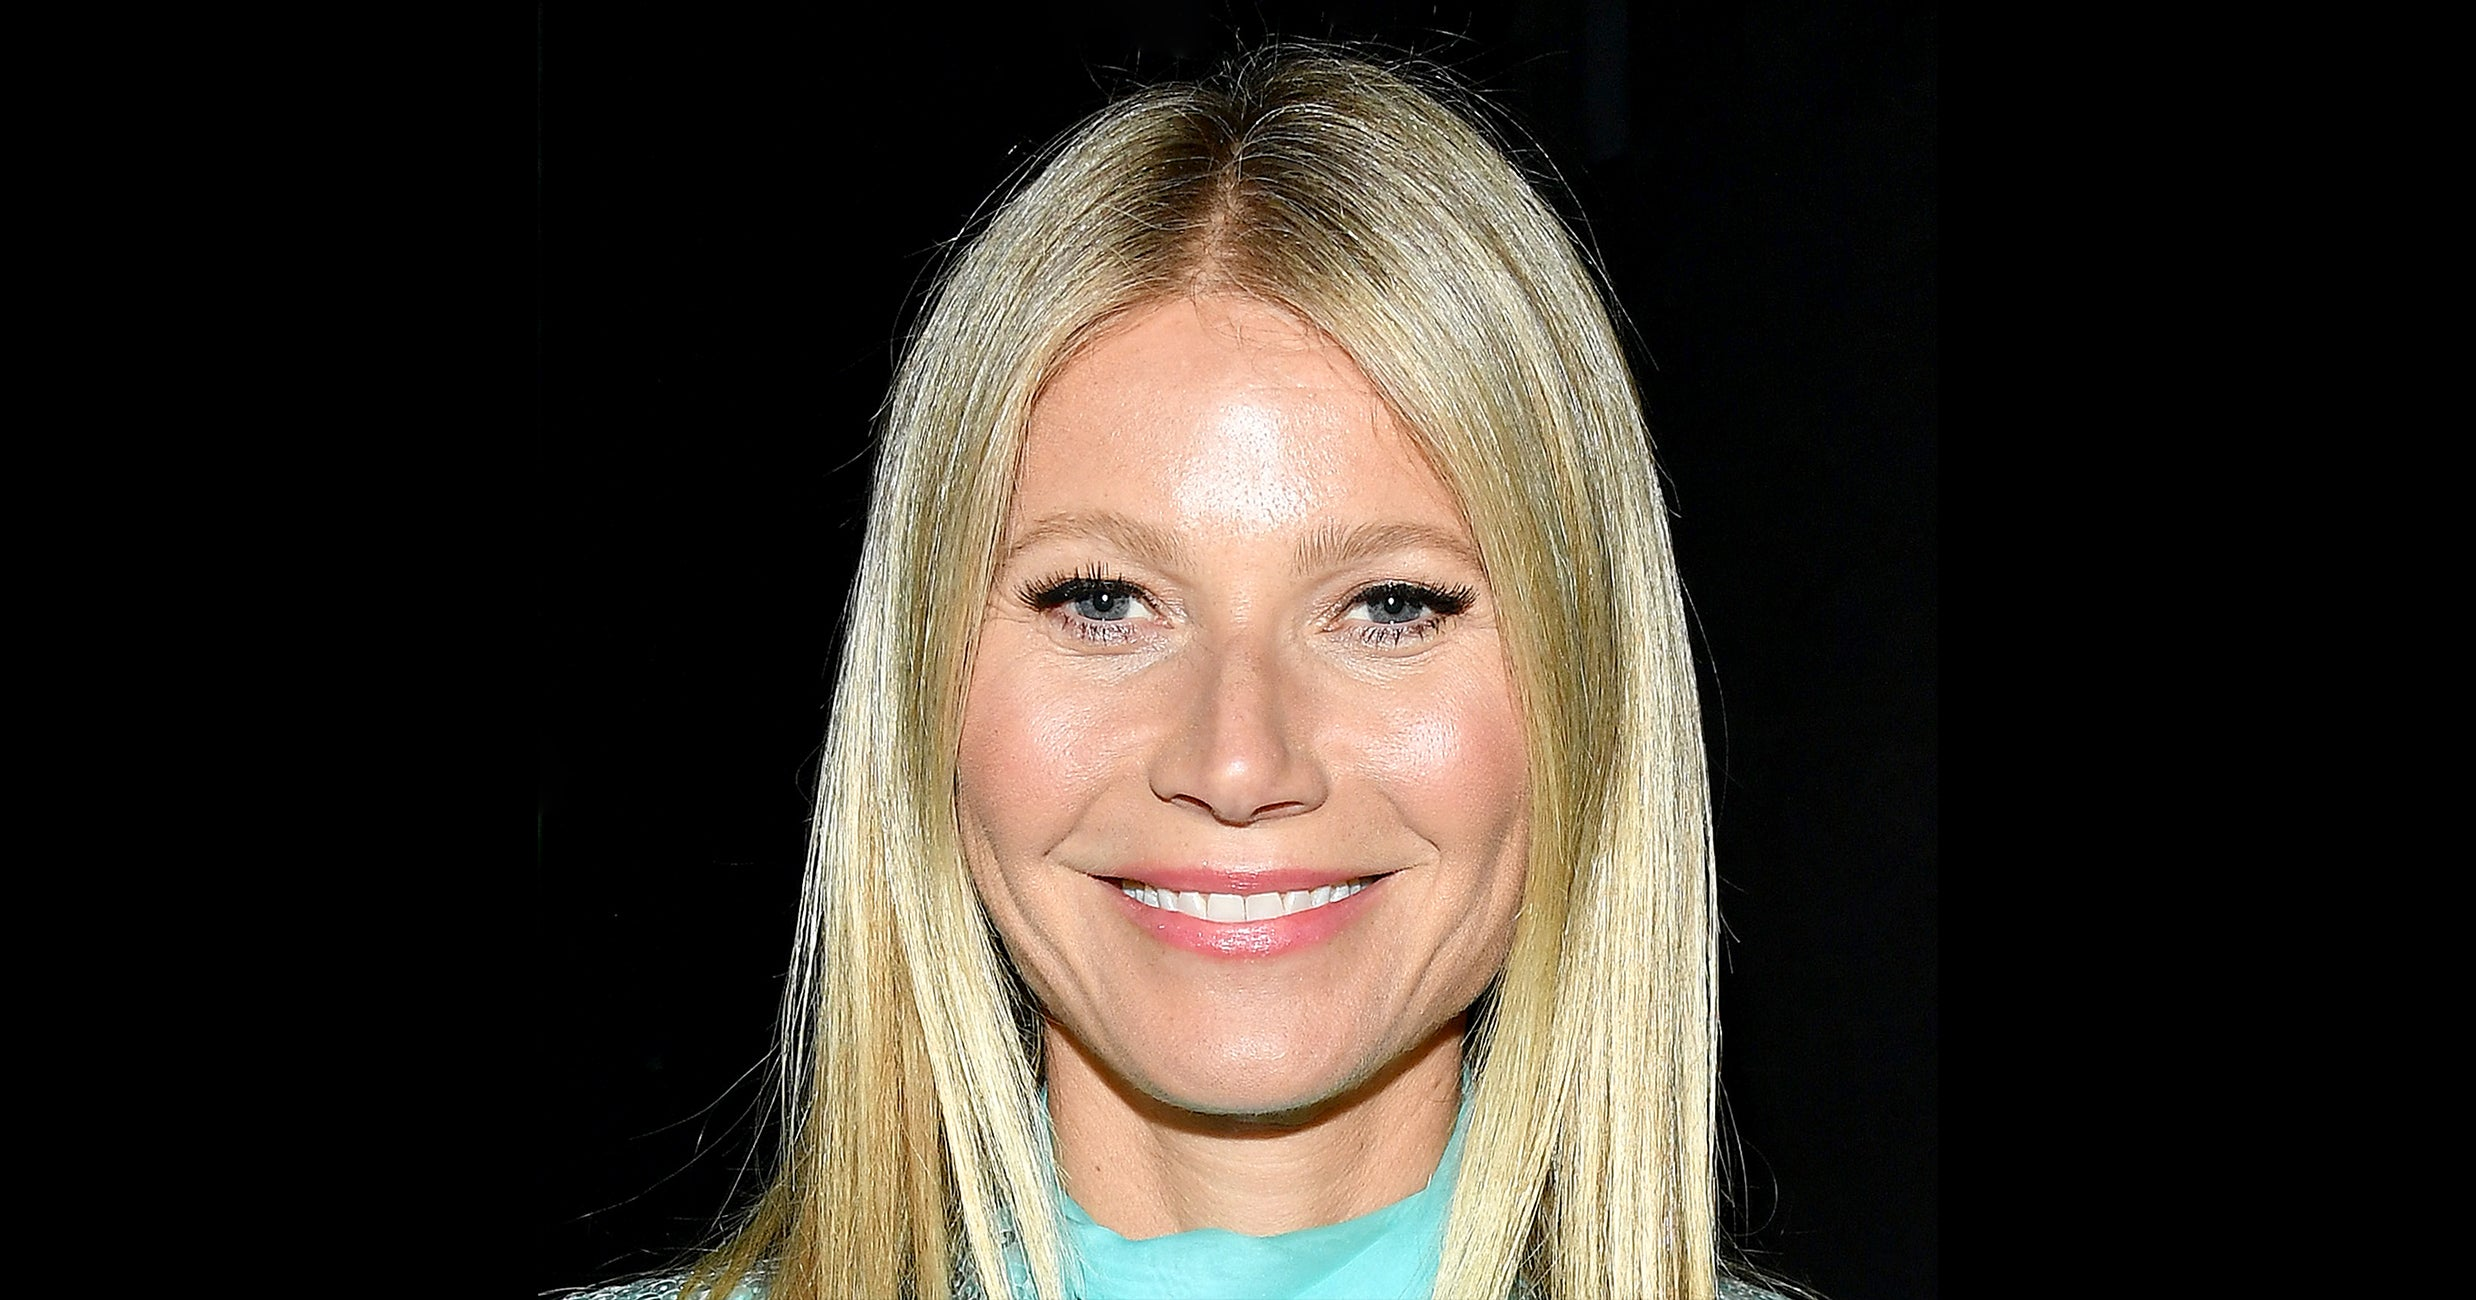 Gwyneth Paltrow's Son Has An Opinion About His Mom's Vibrators